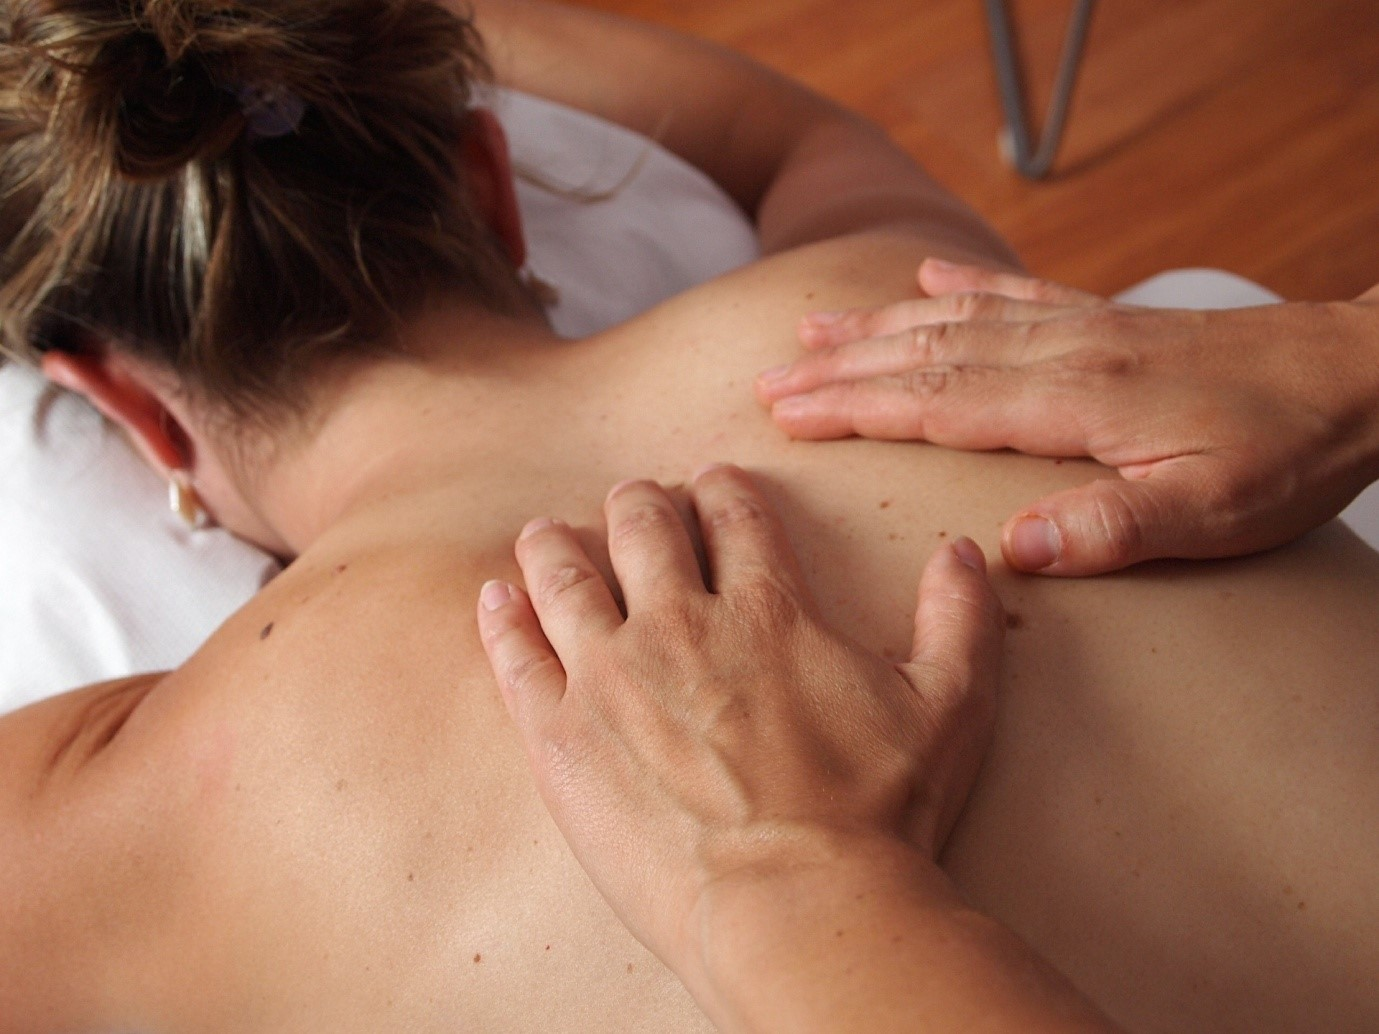 physiotherapy-massage-woman